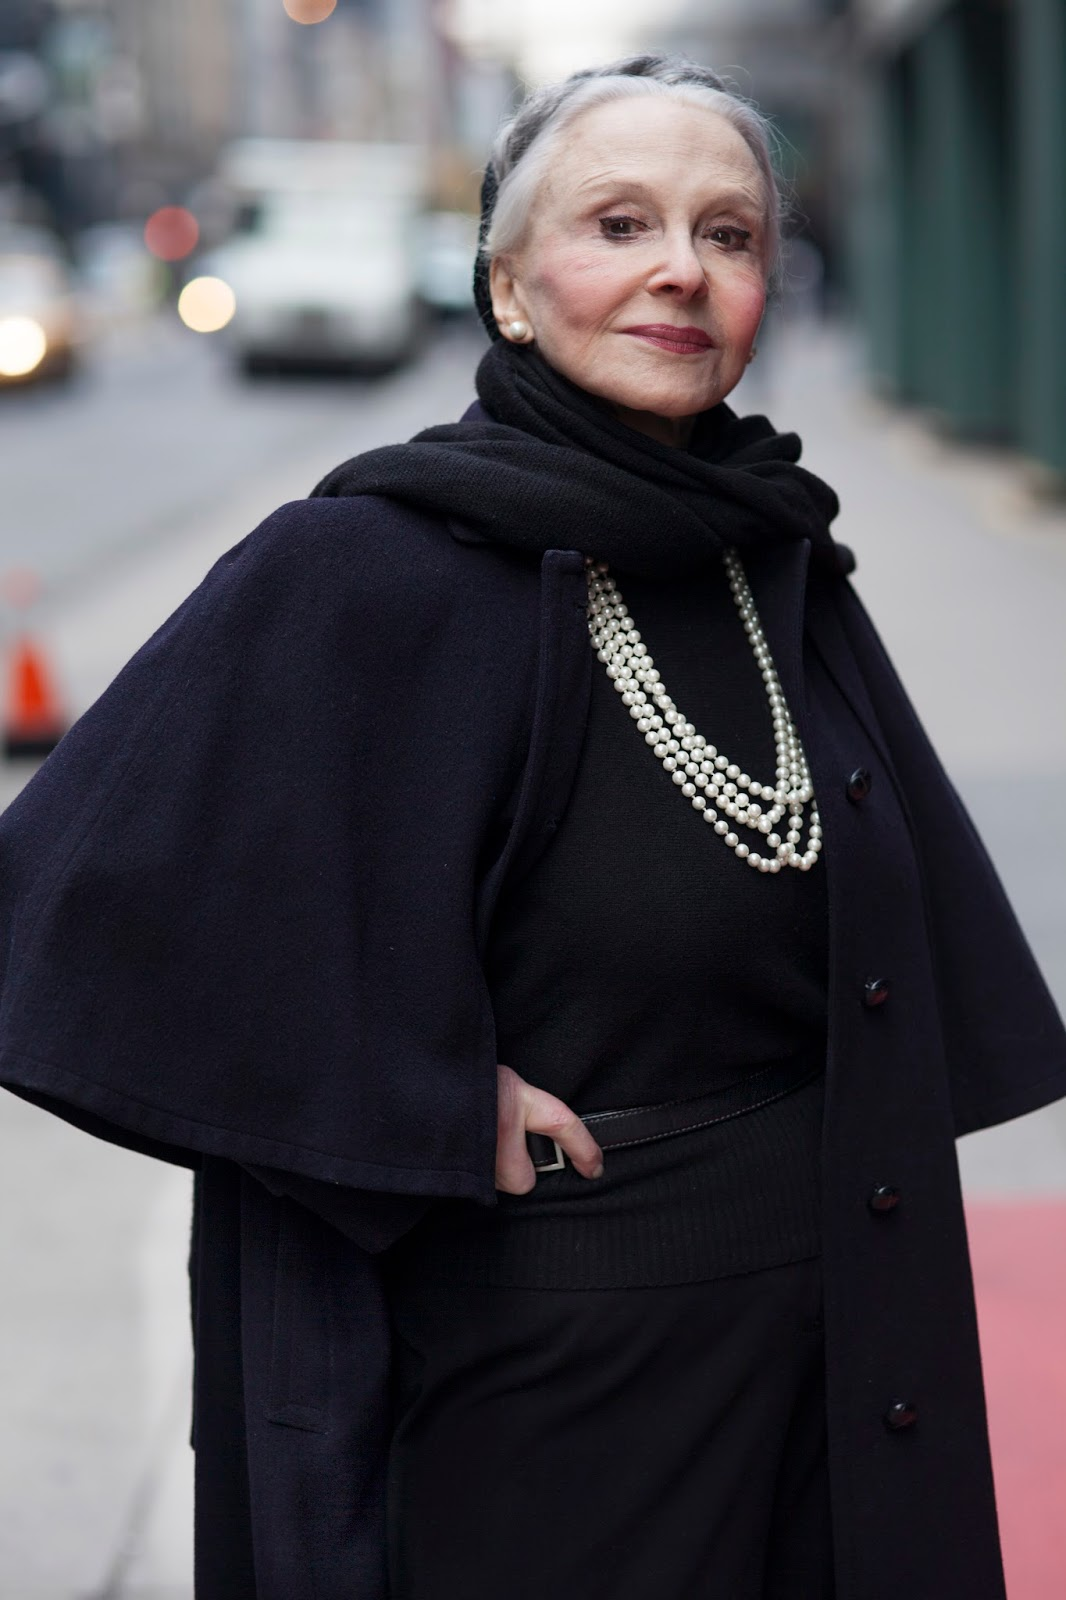 Cape Coat and Pearls